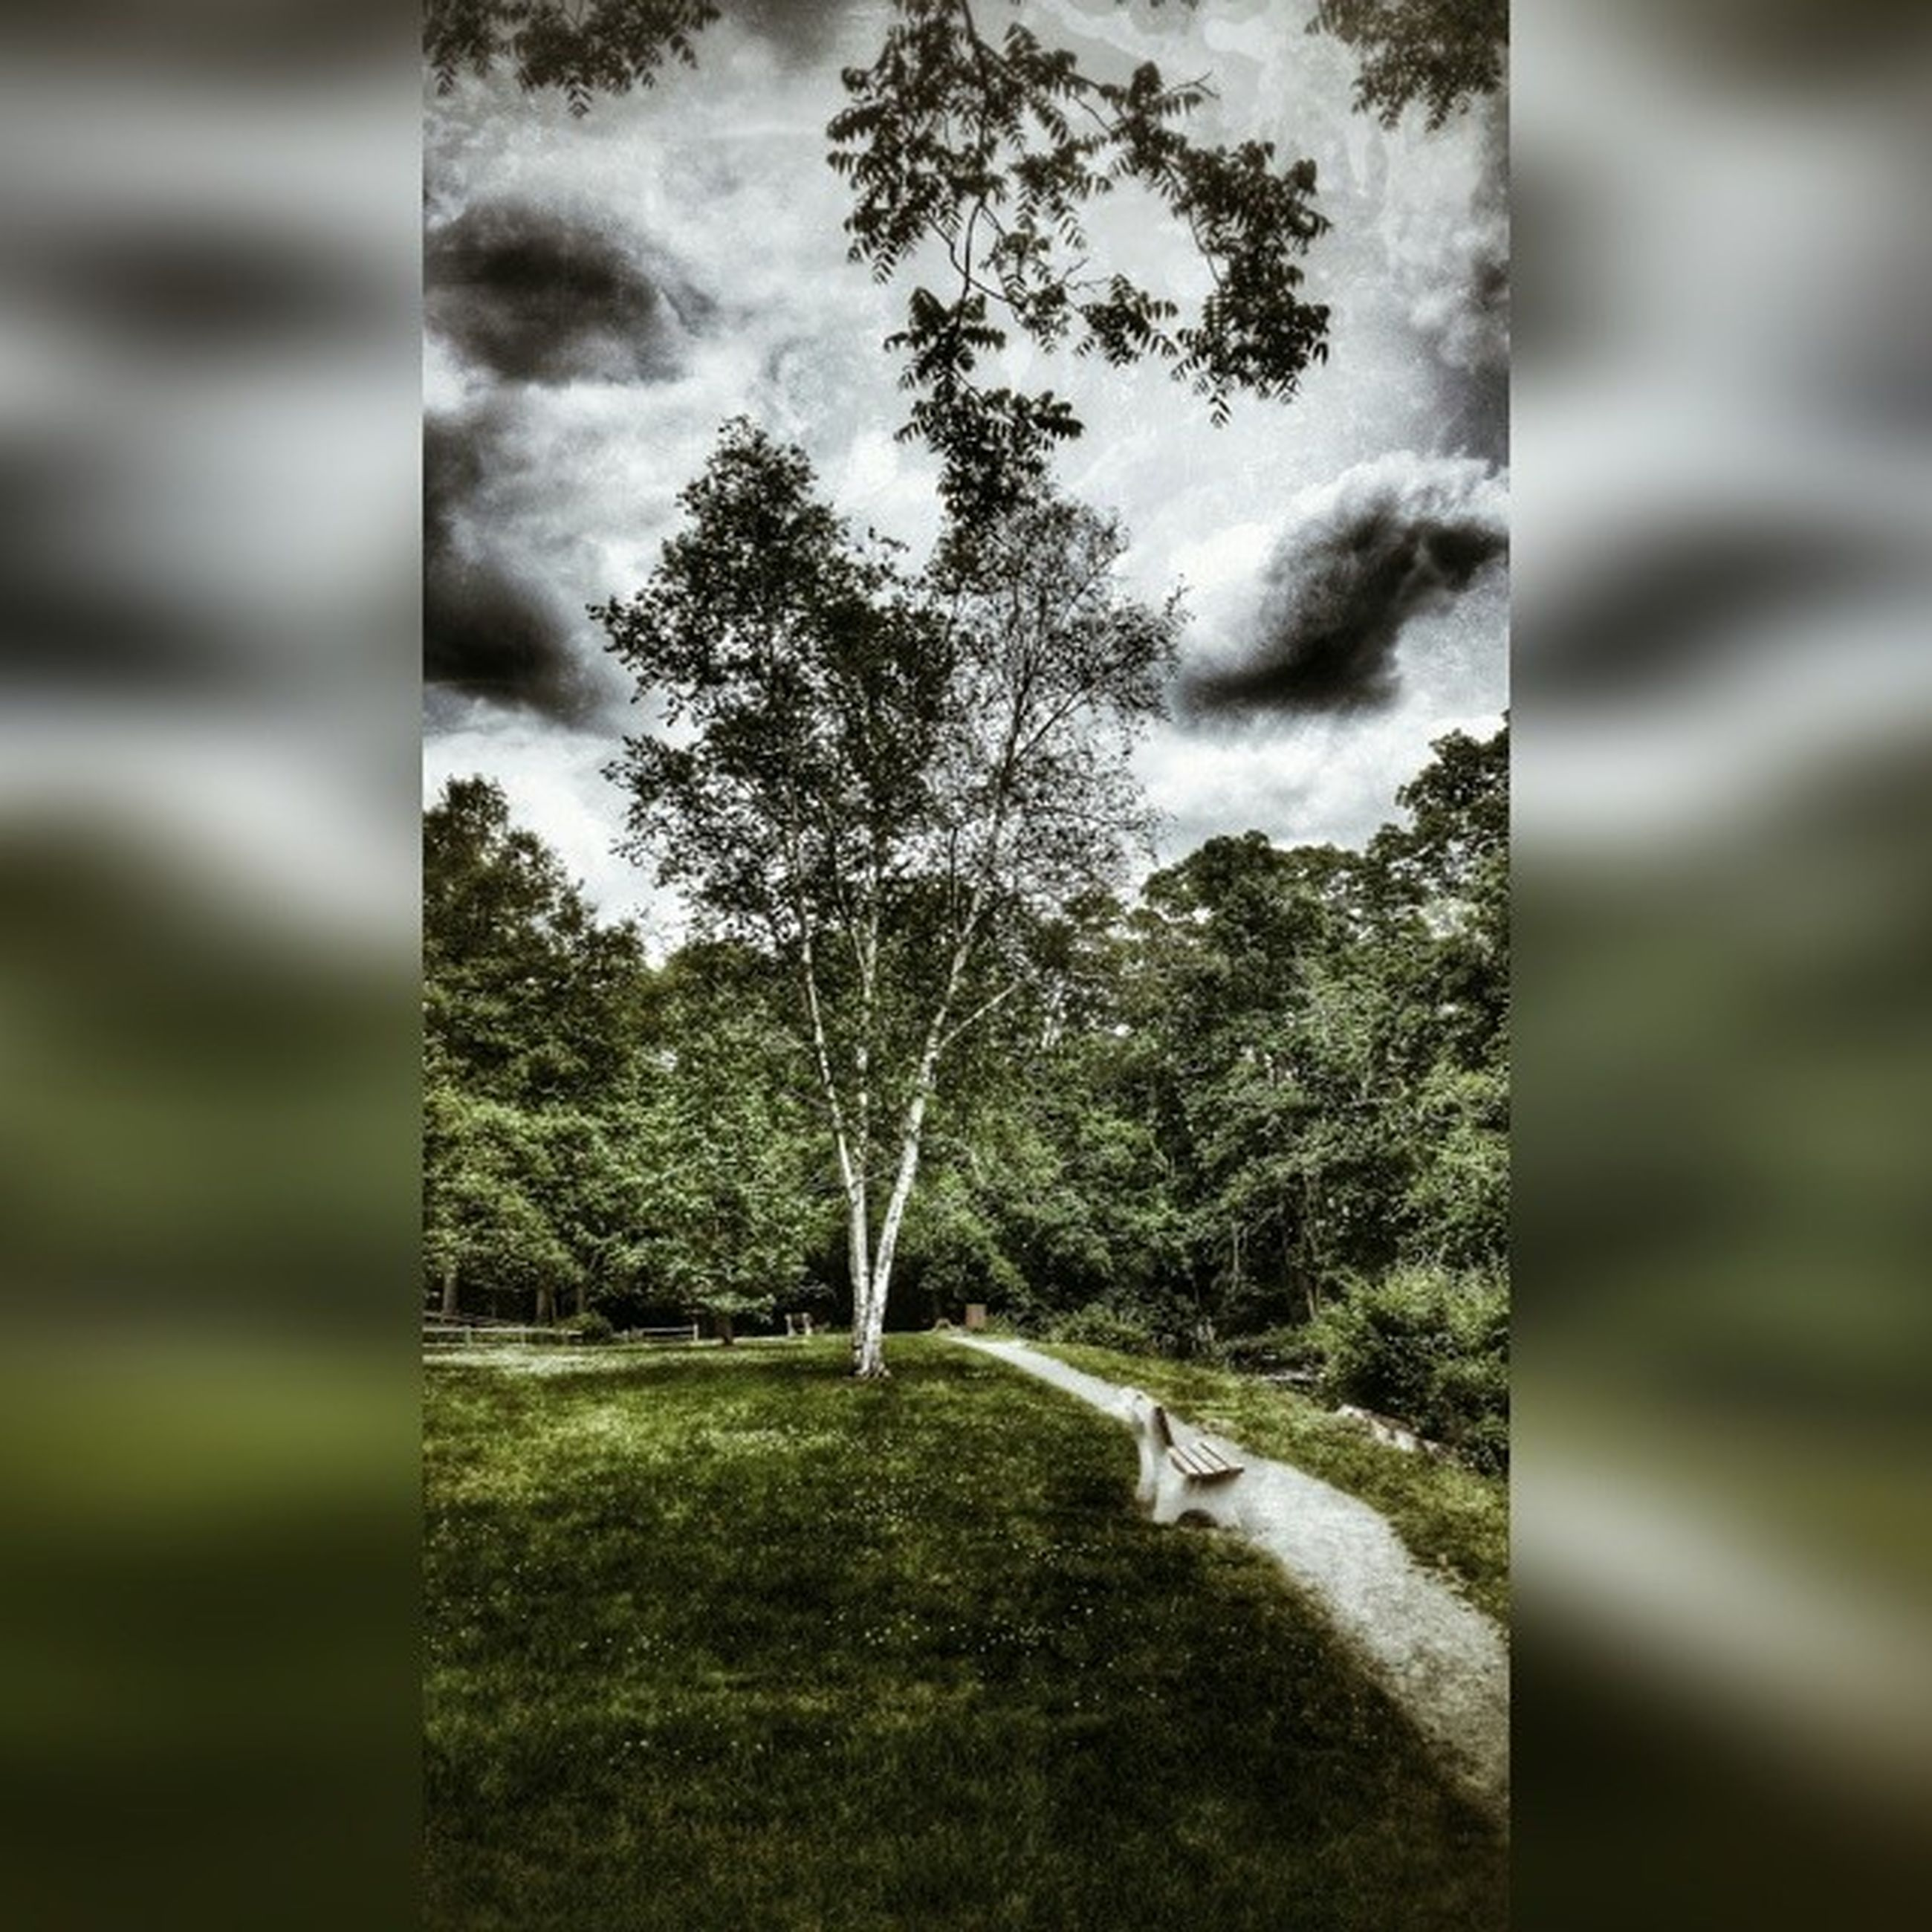 tree, sky, cloud - sky, tranquility, nature, tree trunk, grass, tranquil scene, growth, landscape, day, field, cloudy, cloud, beauty in nature, green color, scenics, outdoors, focus on foreground, park - man made space